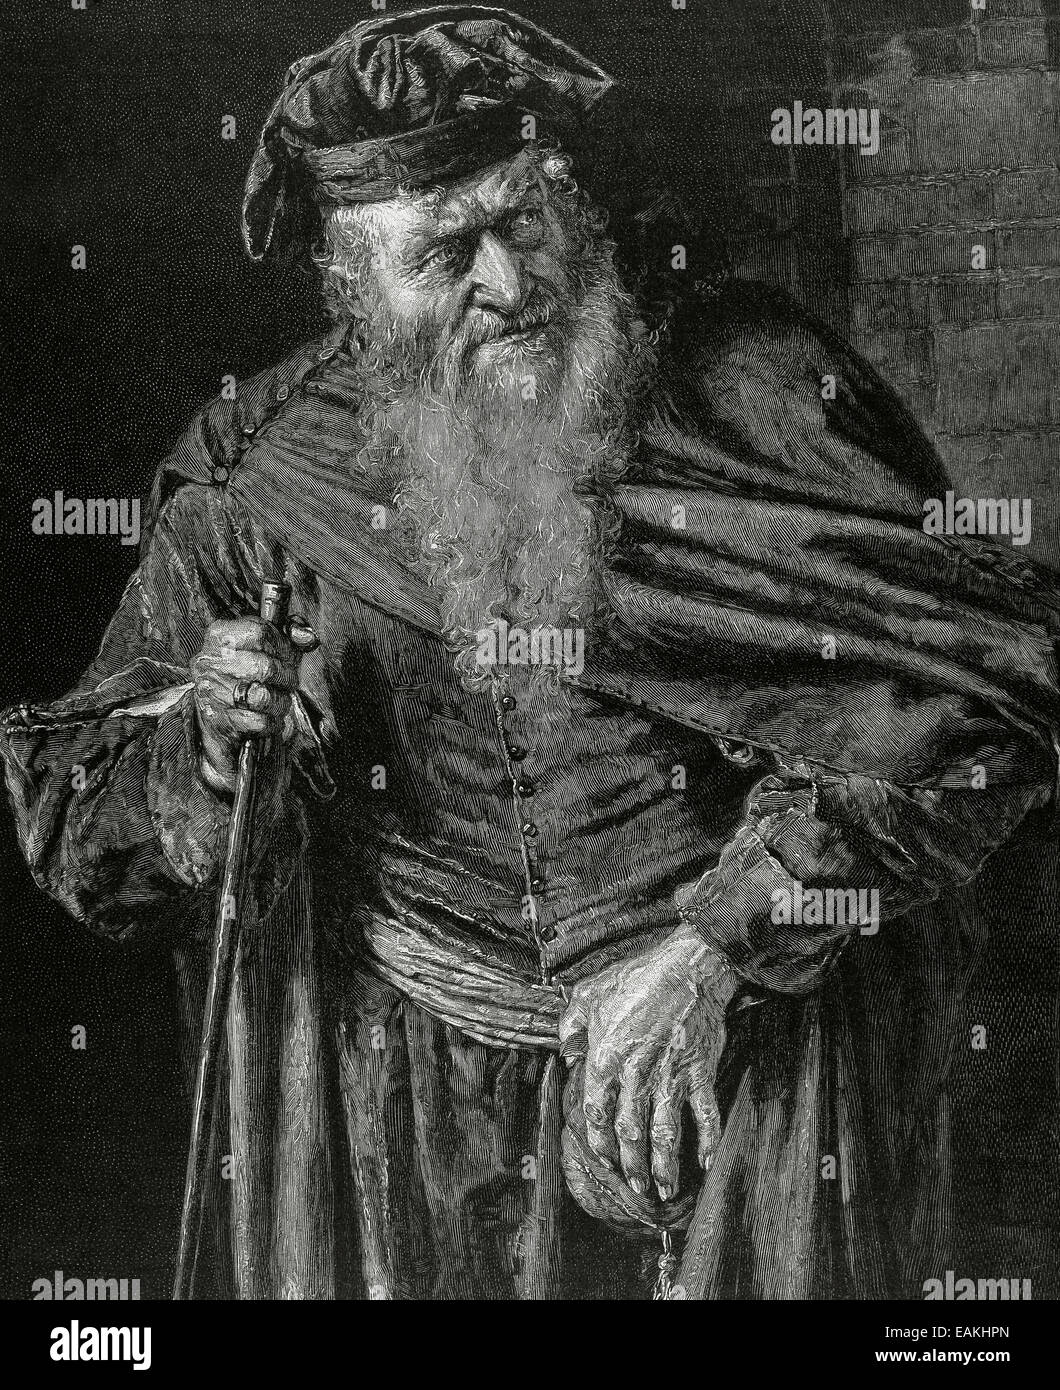 Shakespeare's Character of Shylock in 'The Merchant of Venice' Essay